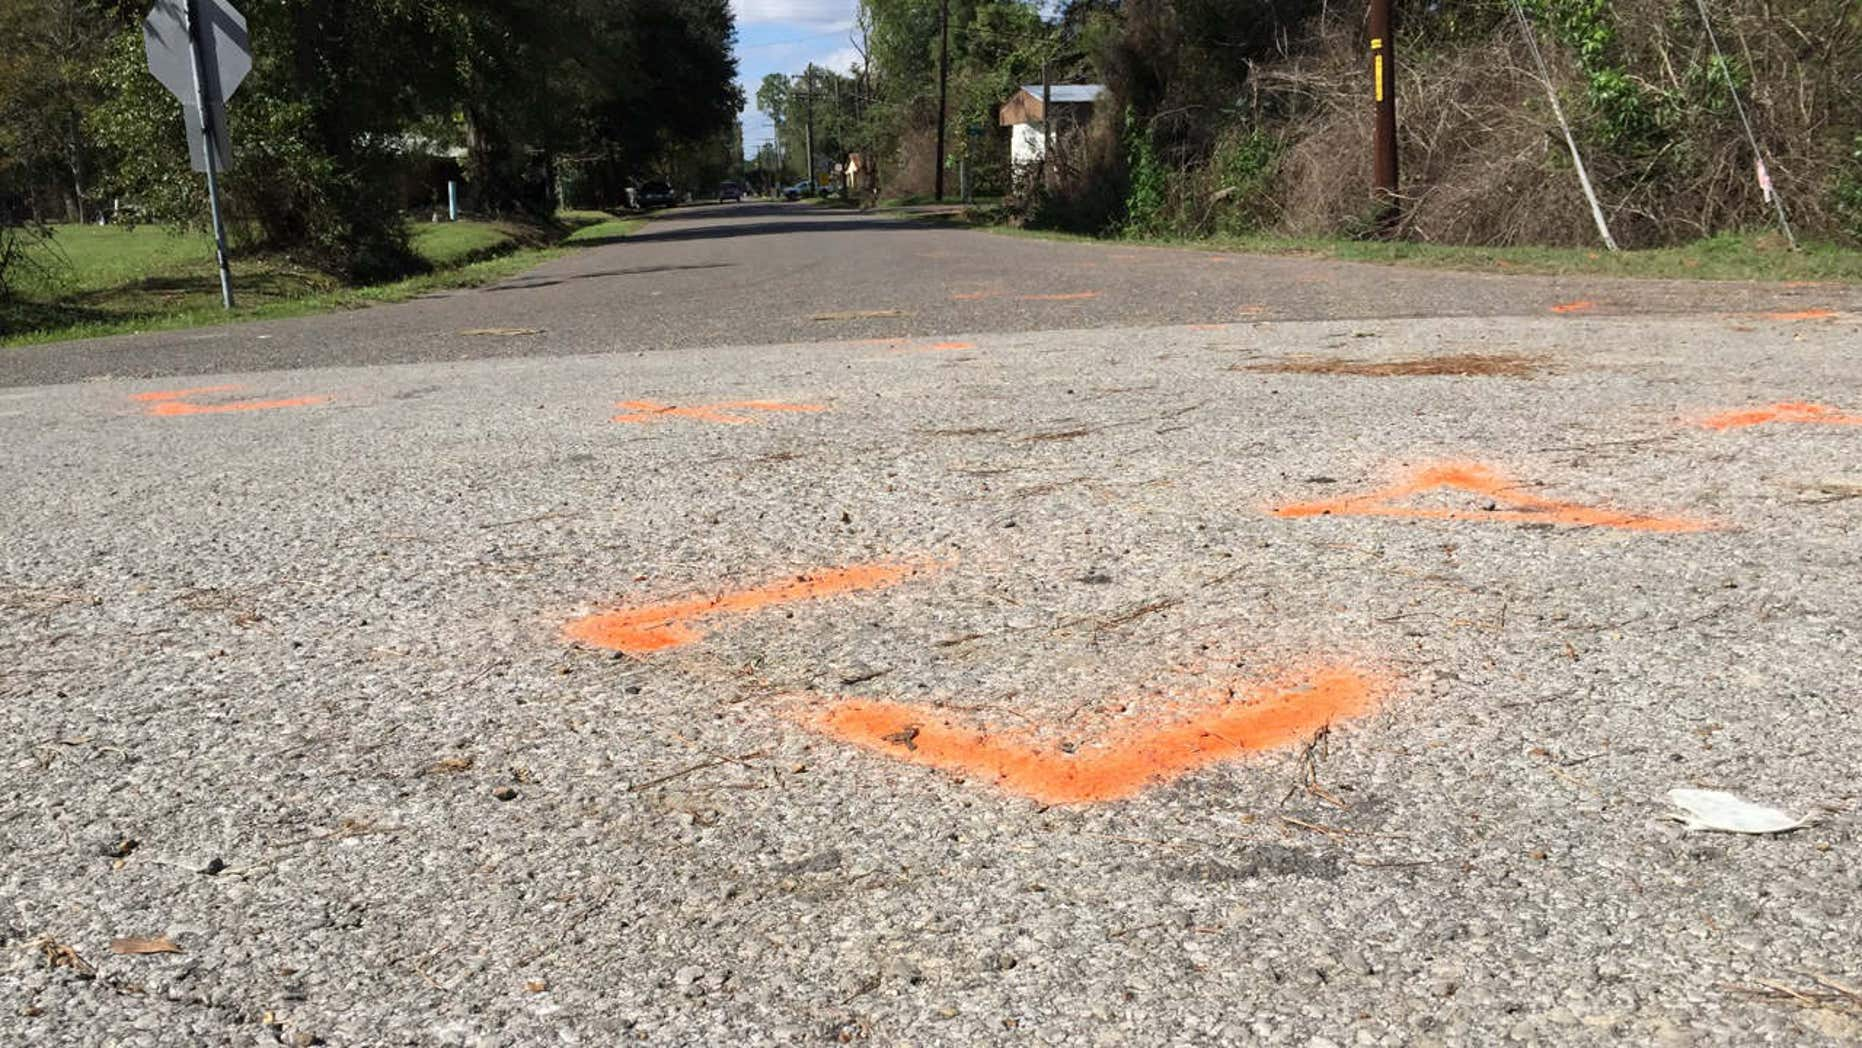 Nov. 4, 2015: This image shows orange paint marking the spot where a 6-year-old boy was shot and killed Tuesday night by Ward 2 city marshals in Marksville, La.